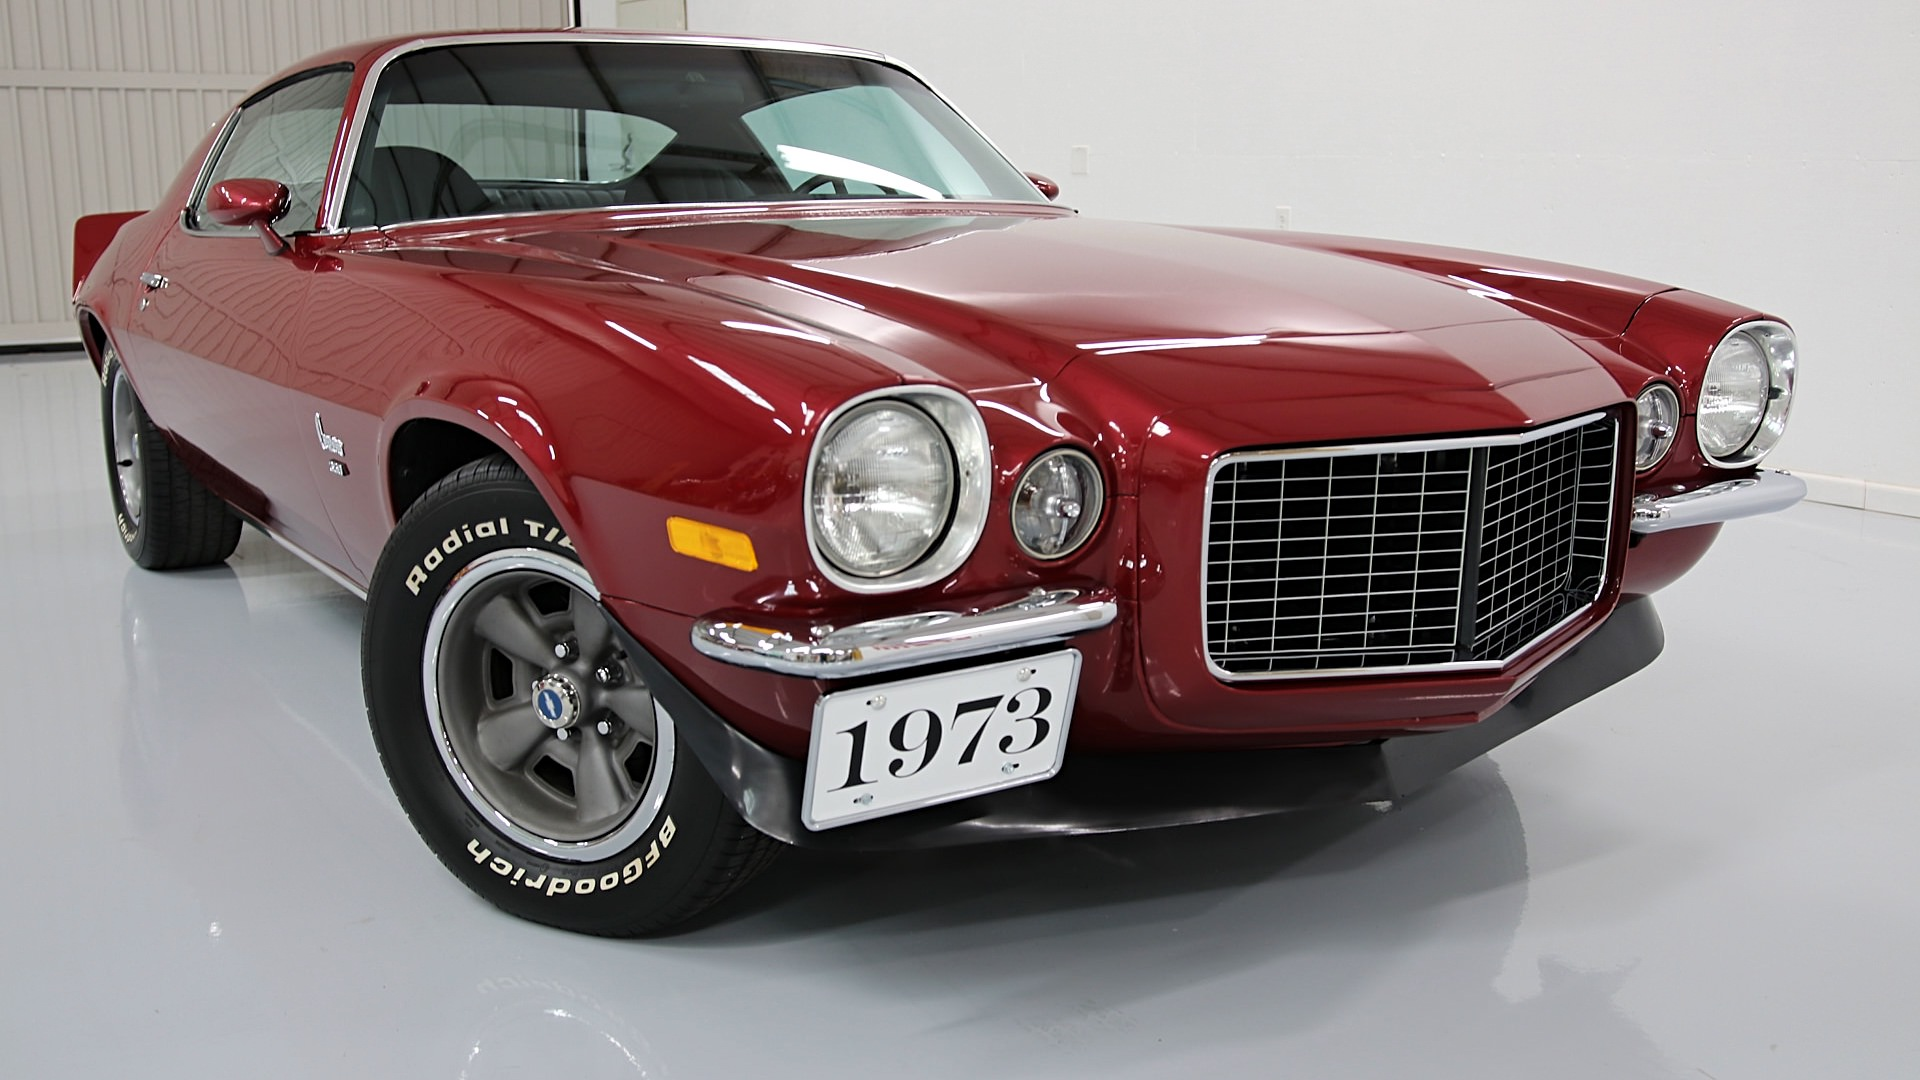 Classic Cars for Sale - MyRod.com - Check out our high quality ...